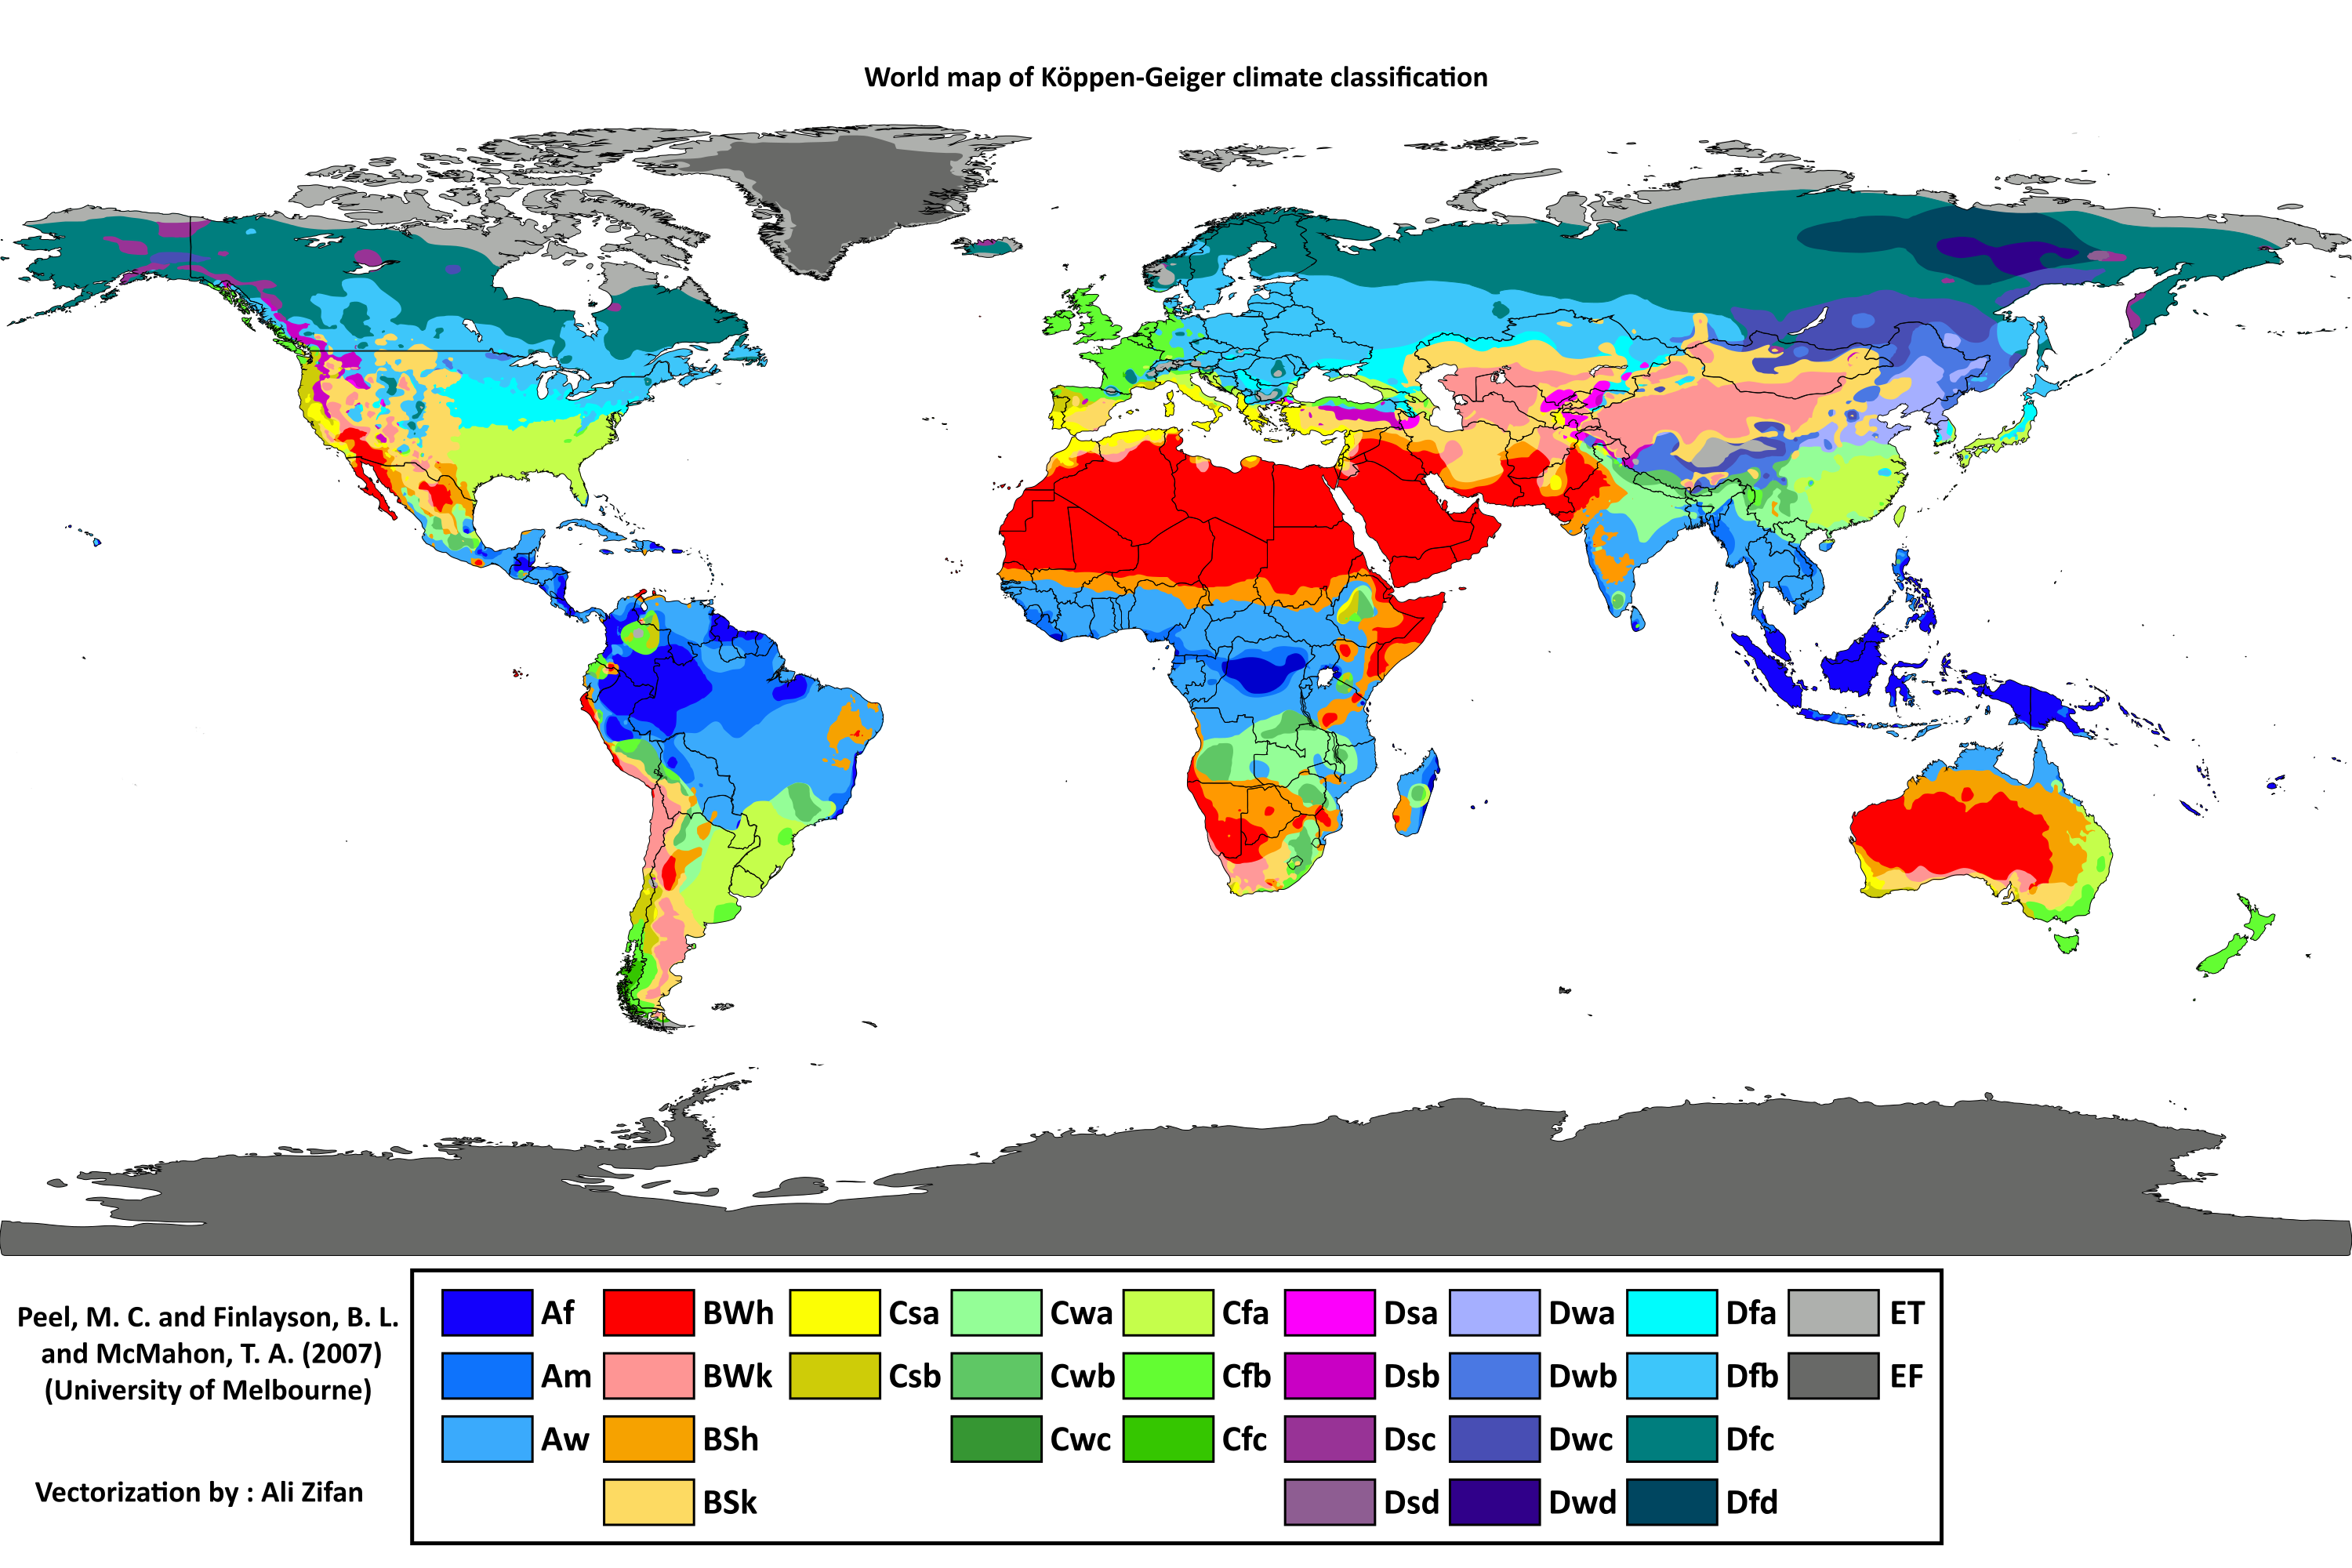 World Koppen Climate Classification